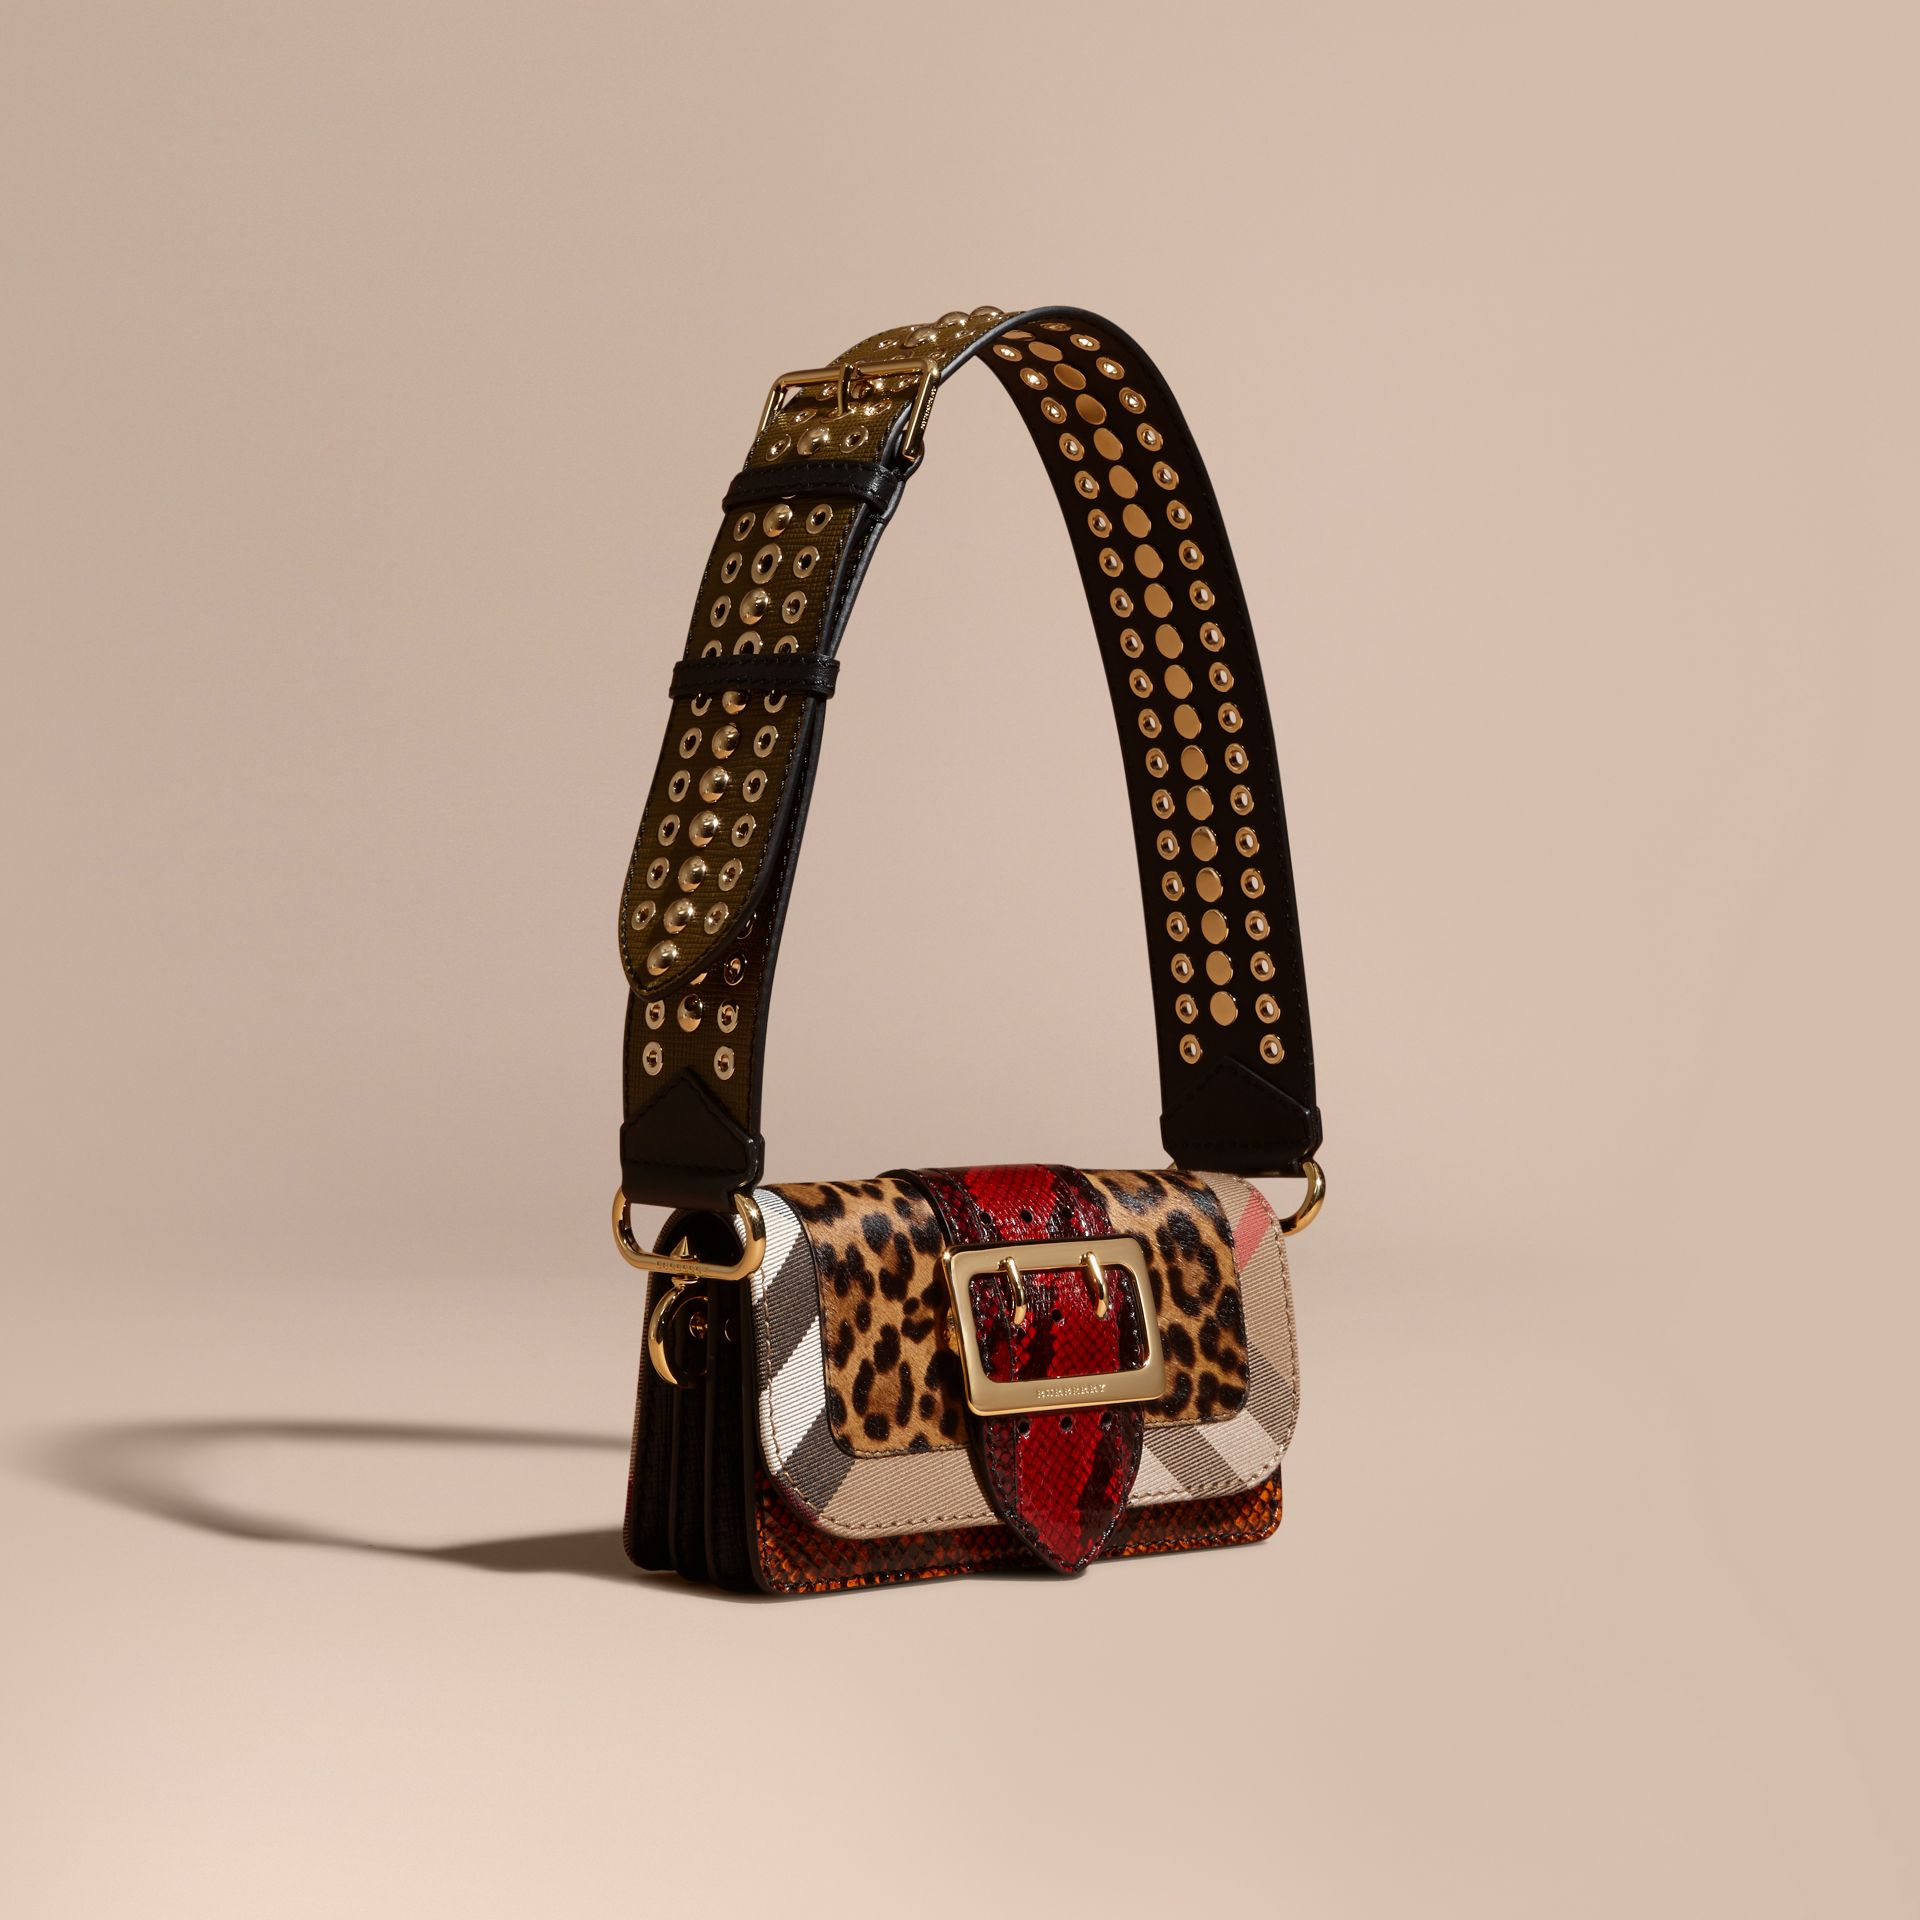 Multicolour The Patchwork in Leopard-print Calfskin and Snakeskin - gallery image 1